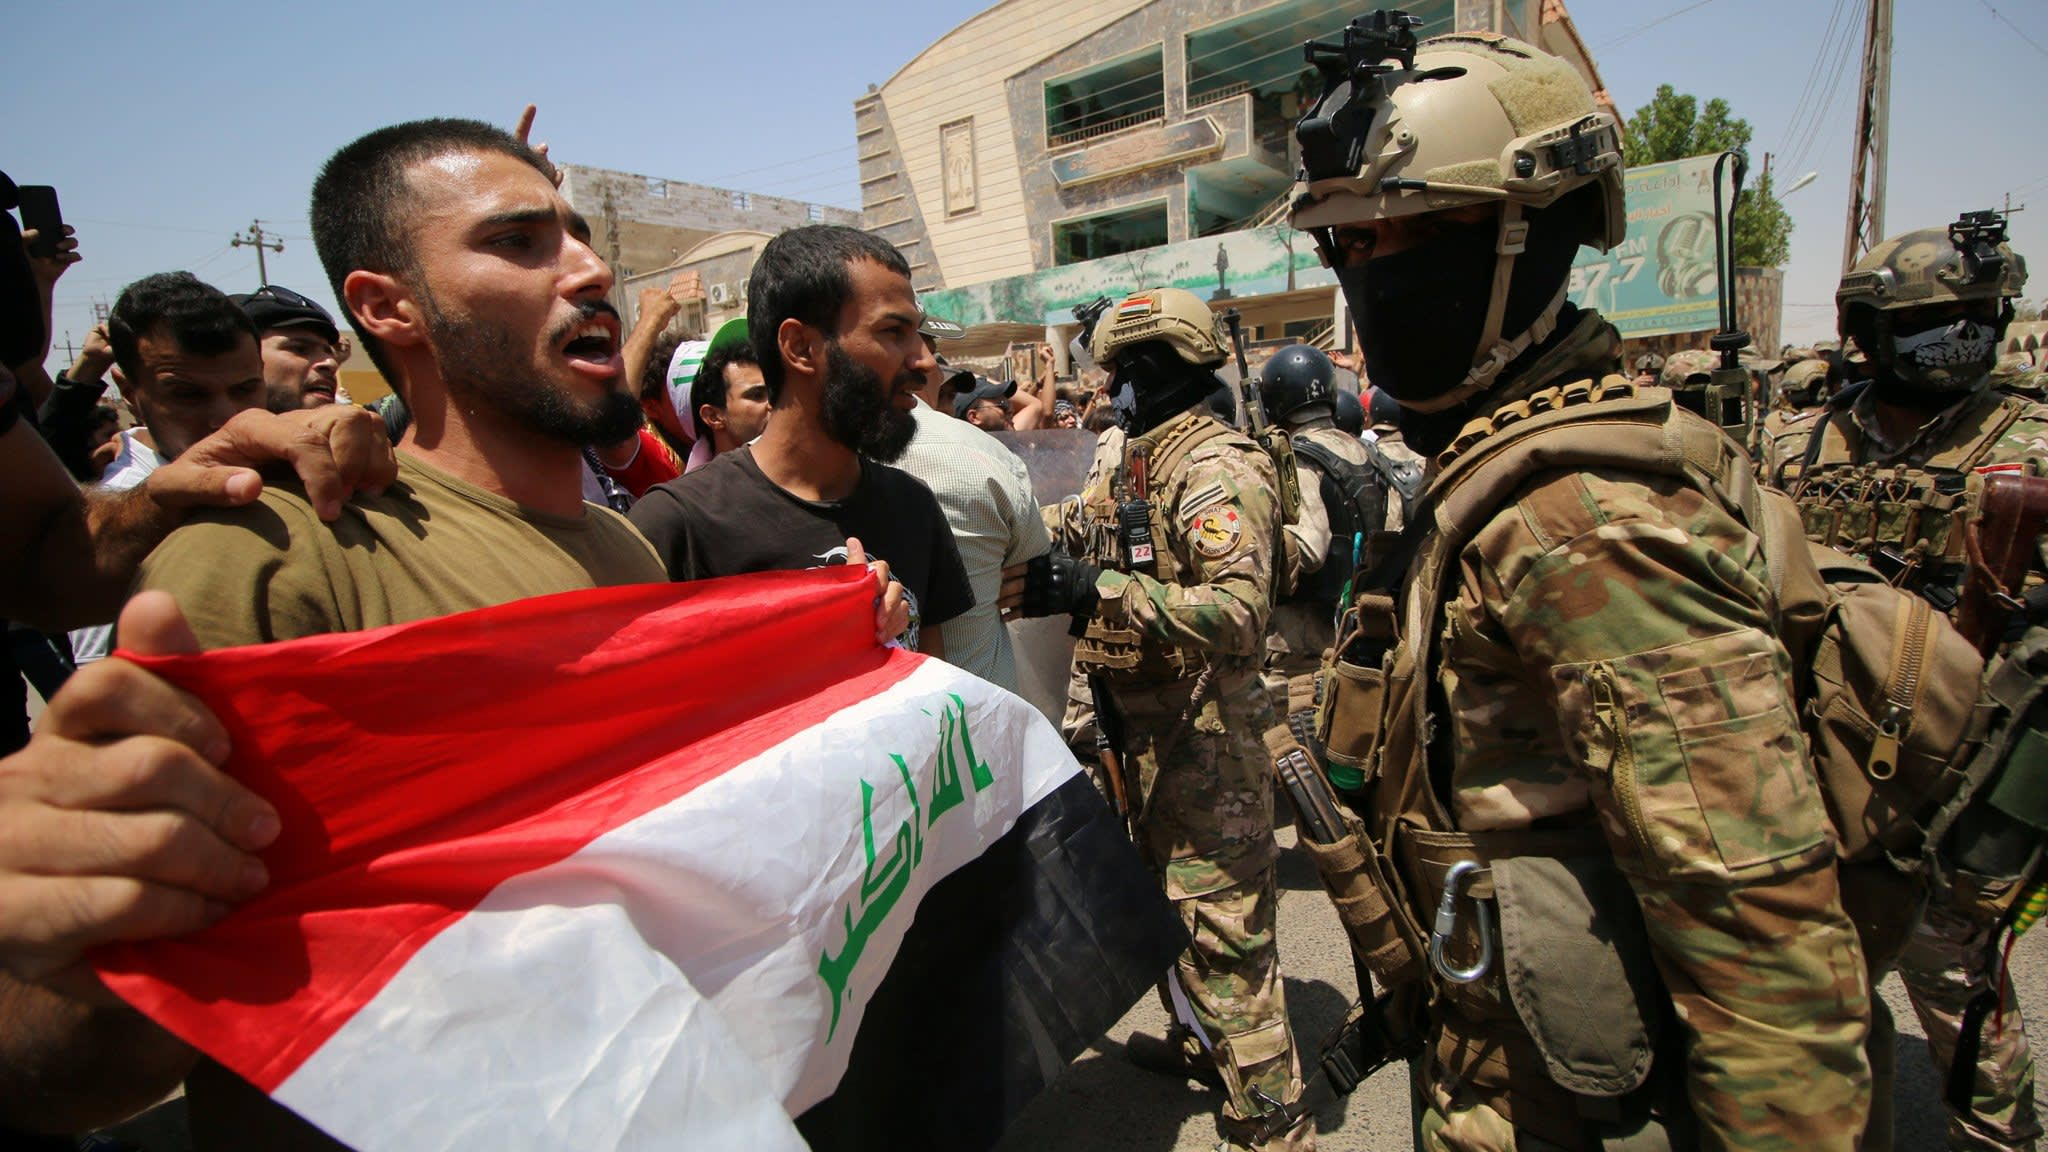 Disillusioned Iraqis give up on their political leaders